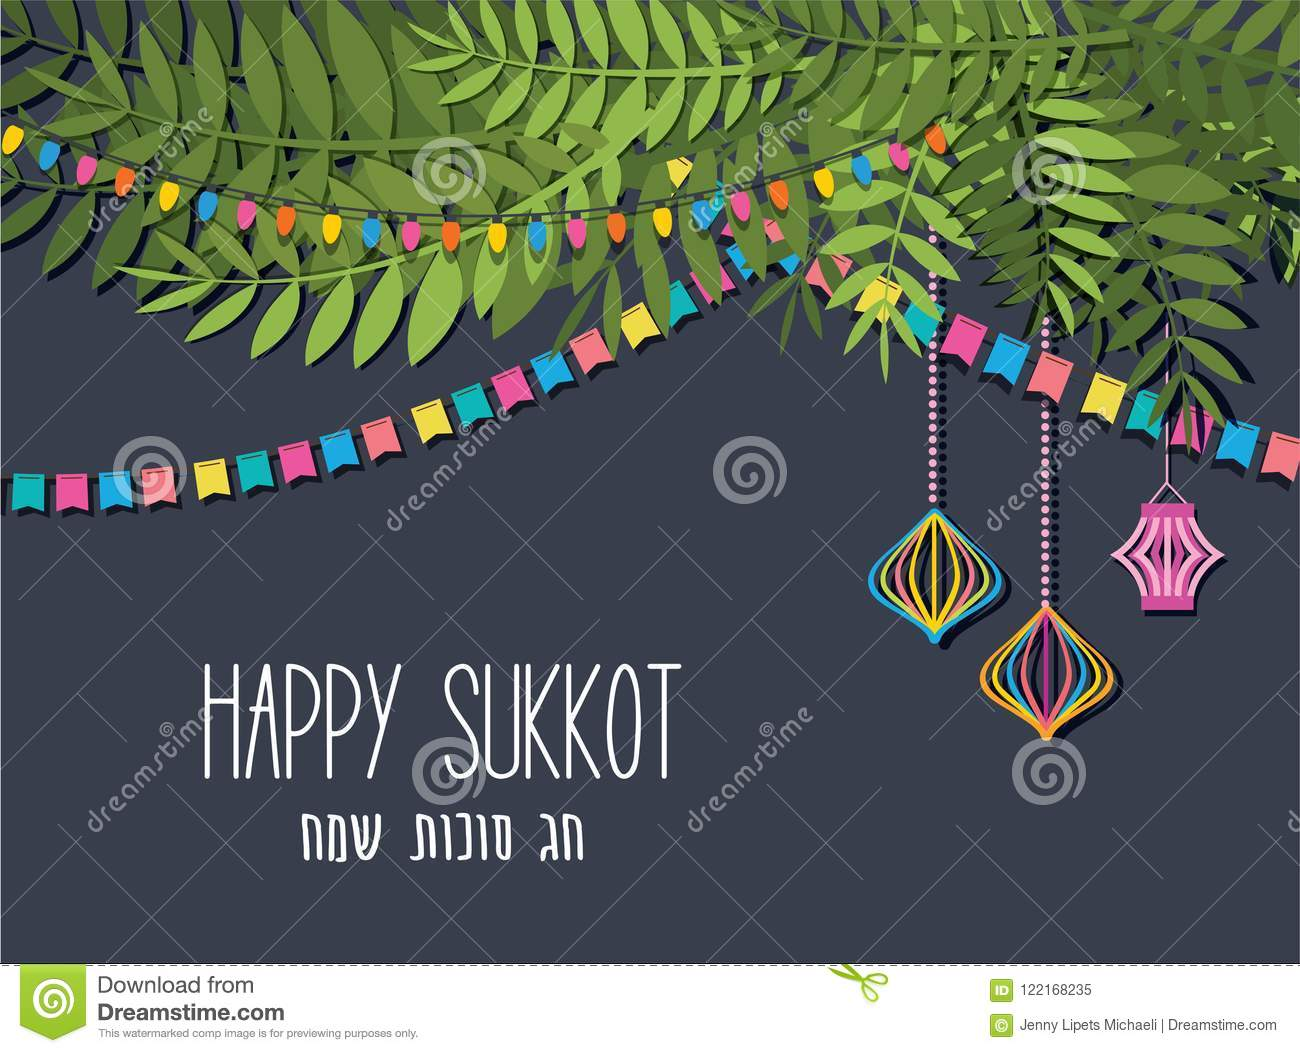 A Vector Illustration Of A Traditional Sukkah For The Jewish Holiday